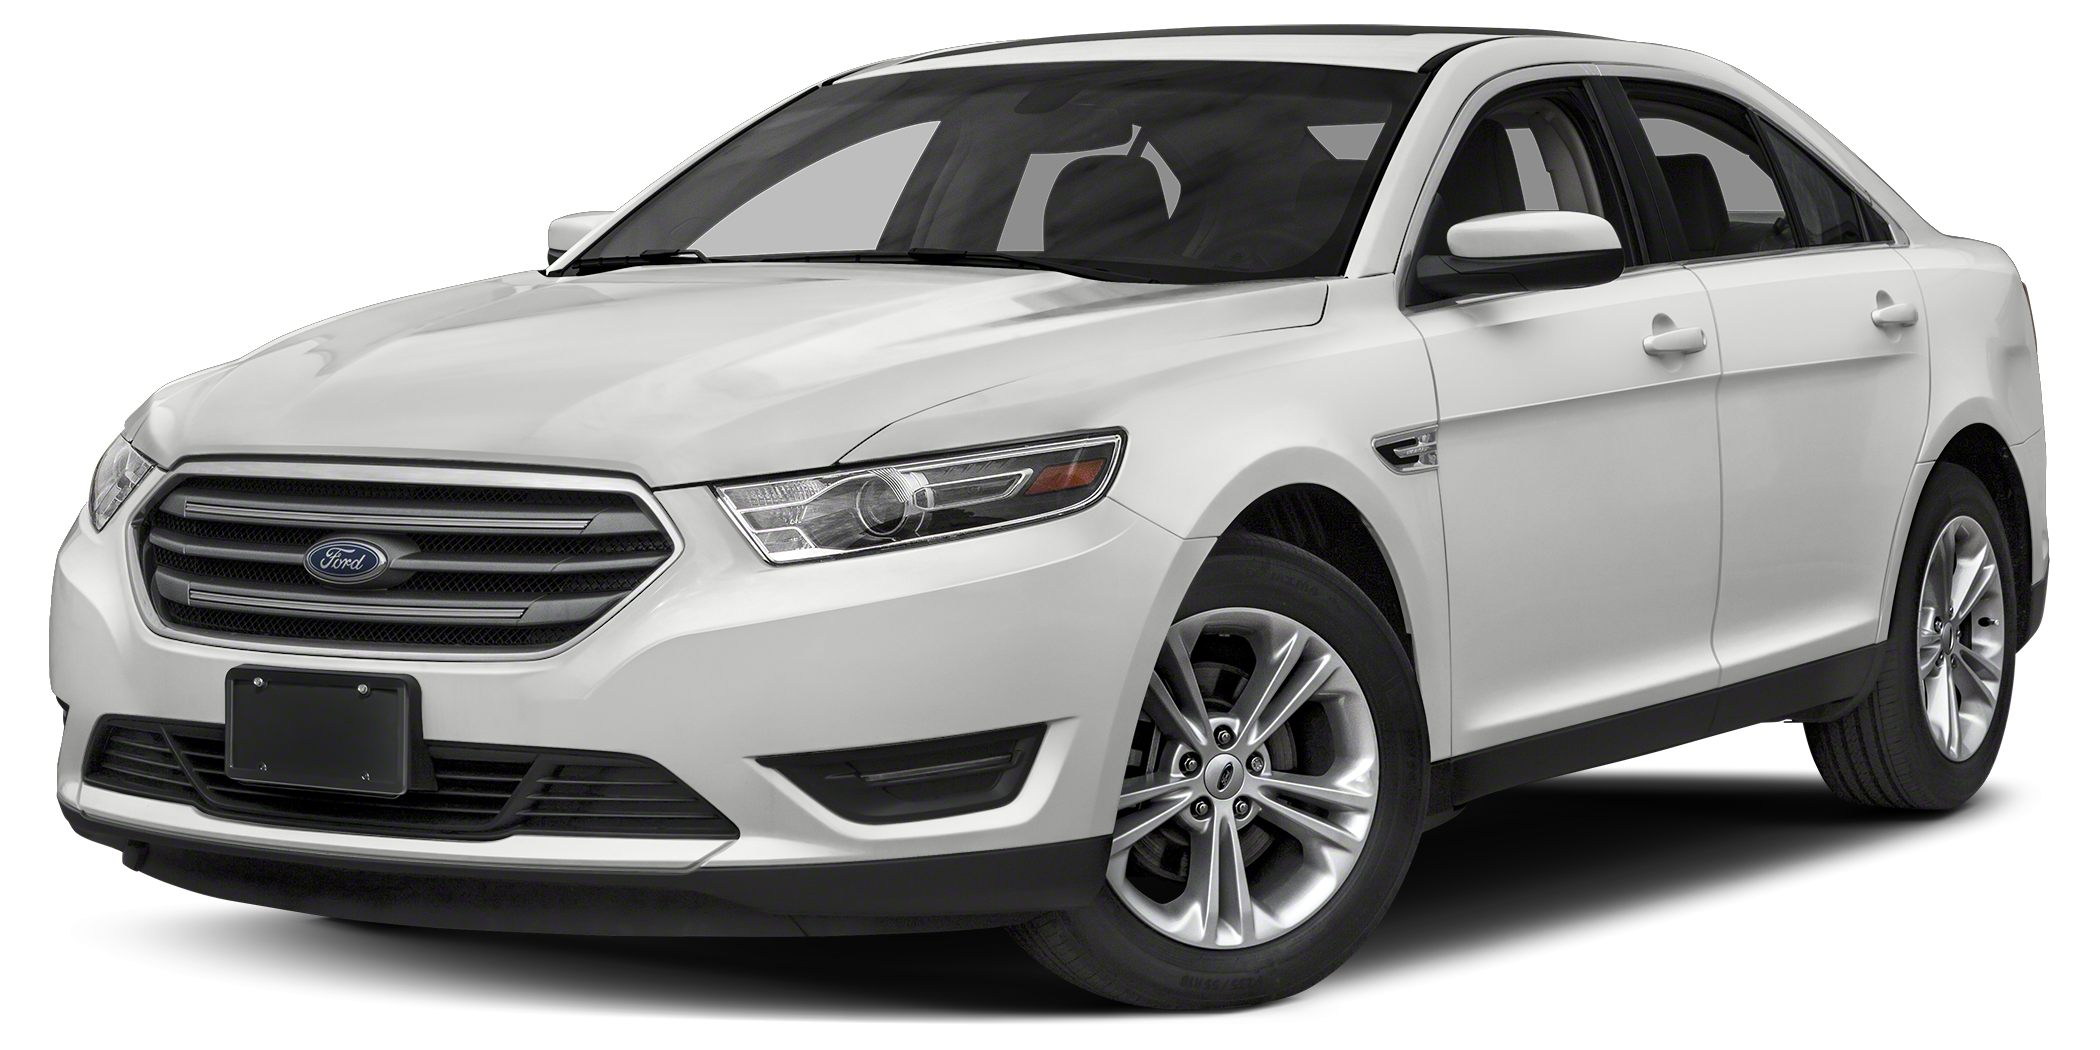 2018 Ford Taurus SE 5957 off MSRP 2718 HighwayCity MPG Oxford White 2018 Ford Taurus 4D Sedan